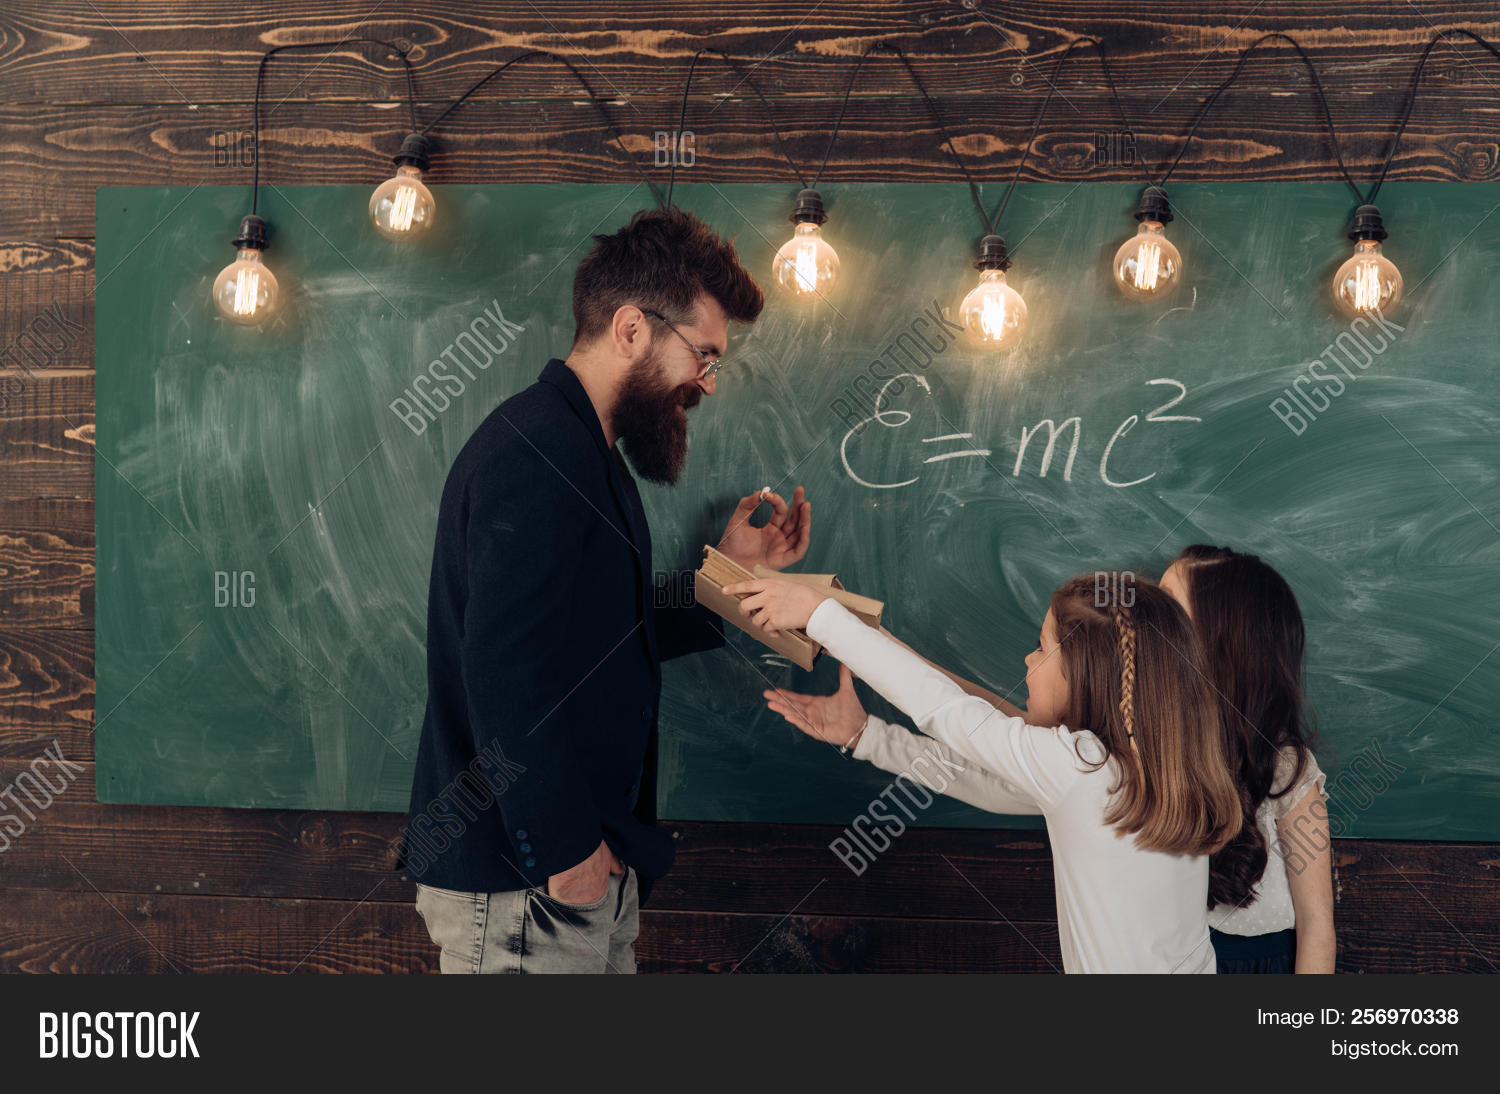 adorable,answer,attention,background,beard,chalkboard,child,childhood,children,classroom,concentrated,concept,creative,curious,cute,dad,daughter,discuss,education,educator,energy,explain,family,father,formal,formula,friend,girl,homeschooling,kid,knowledge,learn,lesson,listen,man,parent,physics,primary,pupil,question,school,schoolgirl,sister,smart,speak,study,suit,teach,teacher,together